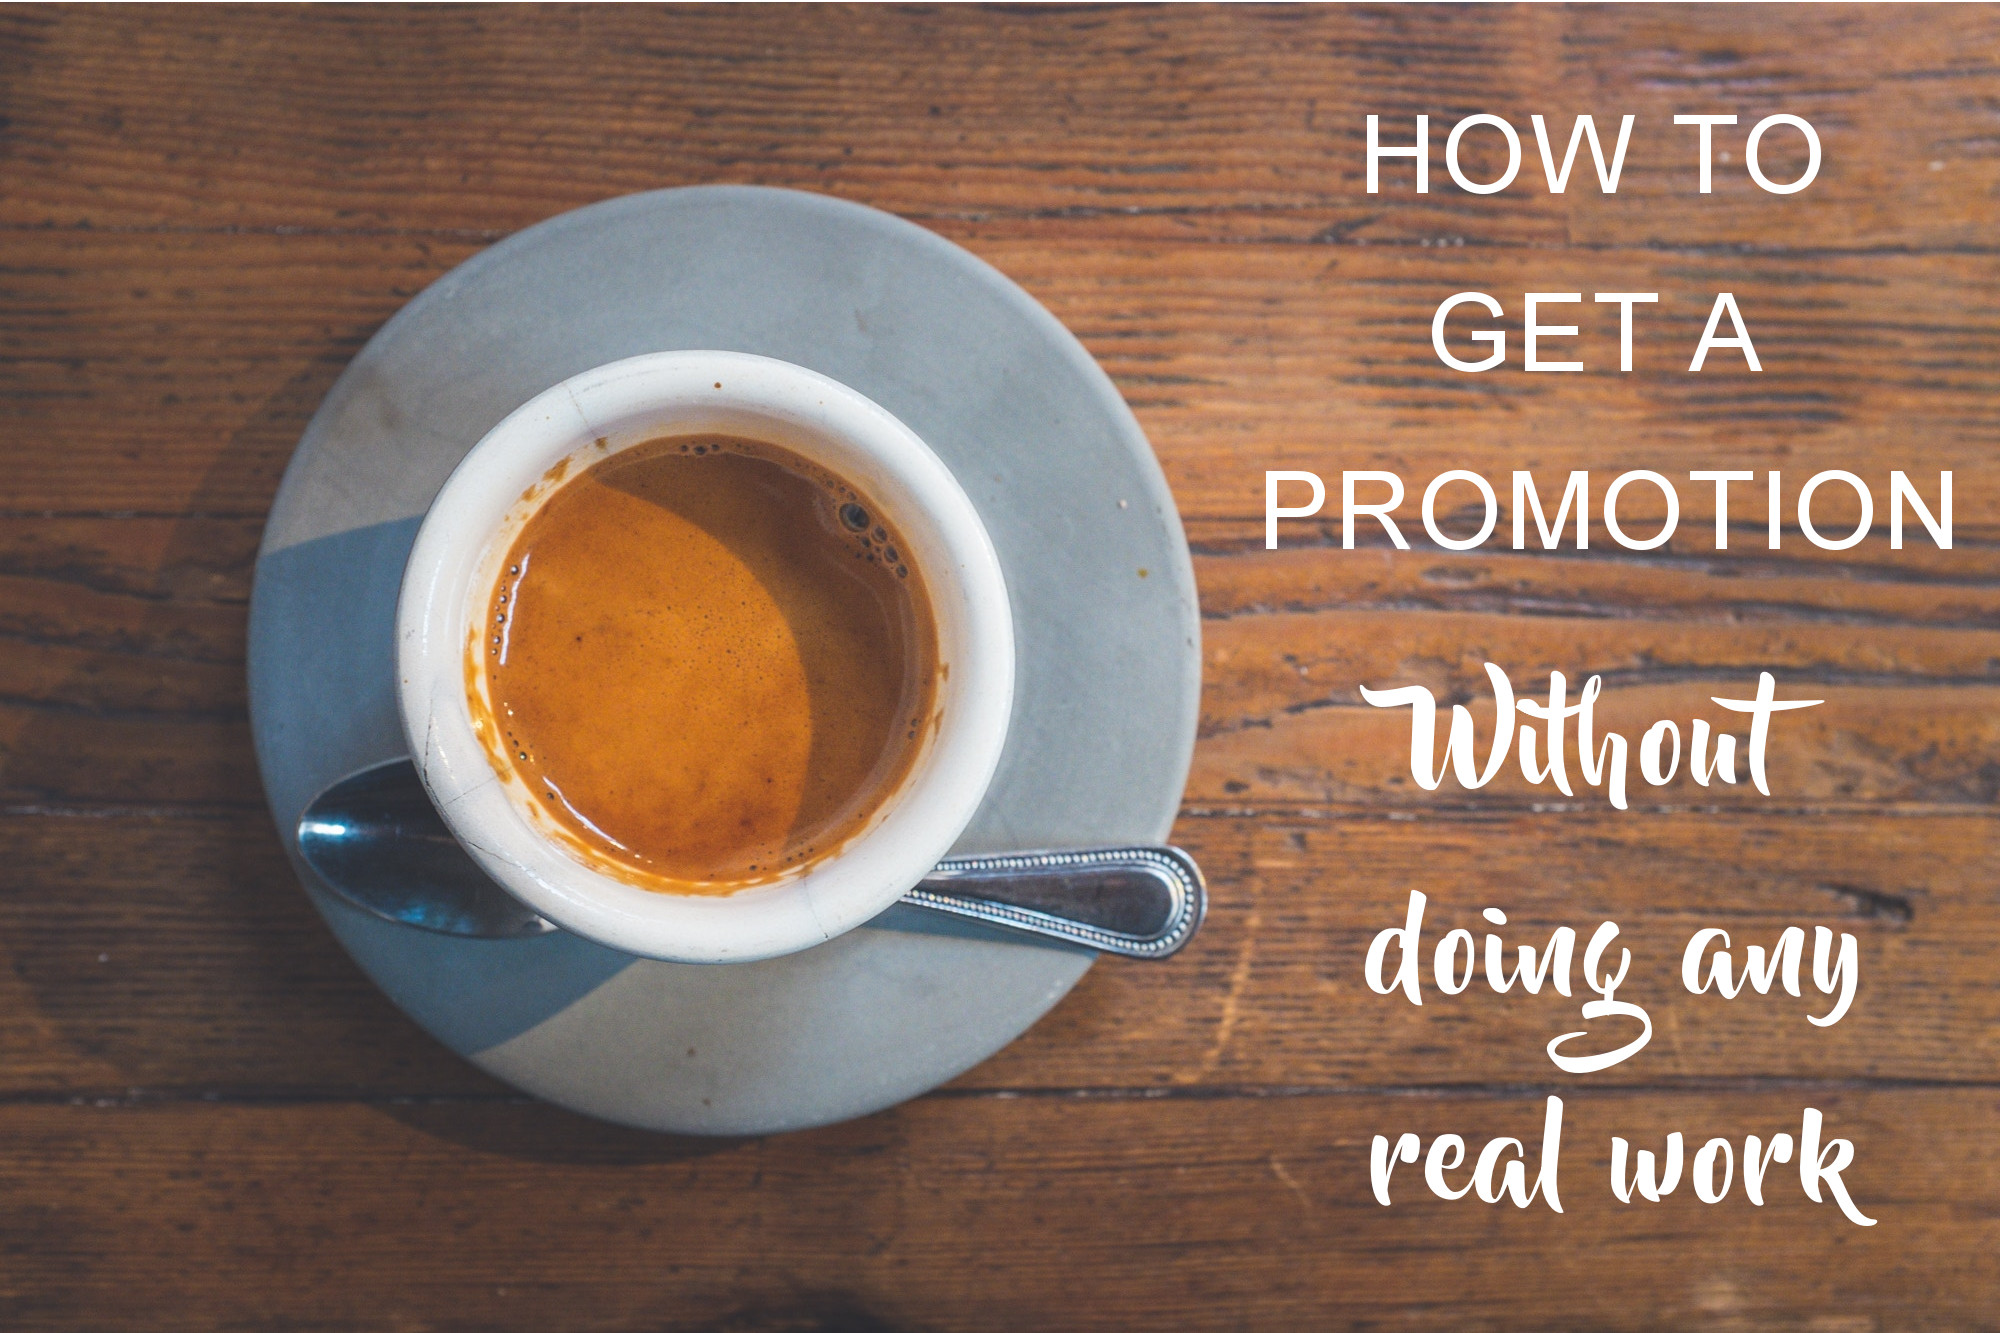 How to get a promotion without doing any real work